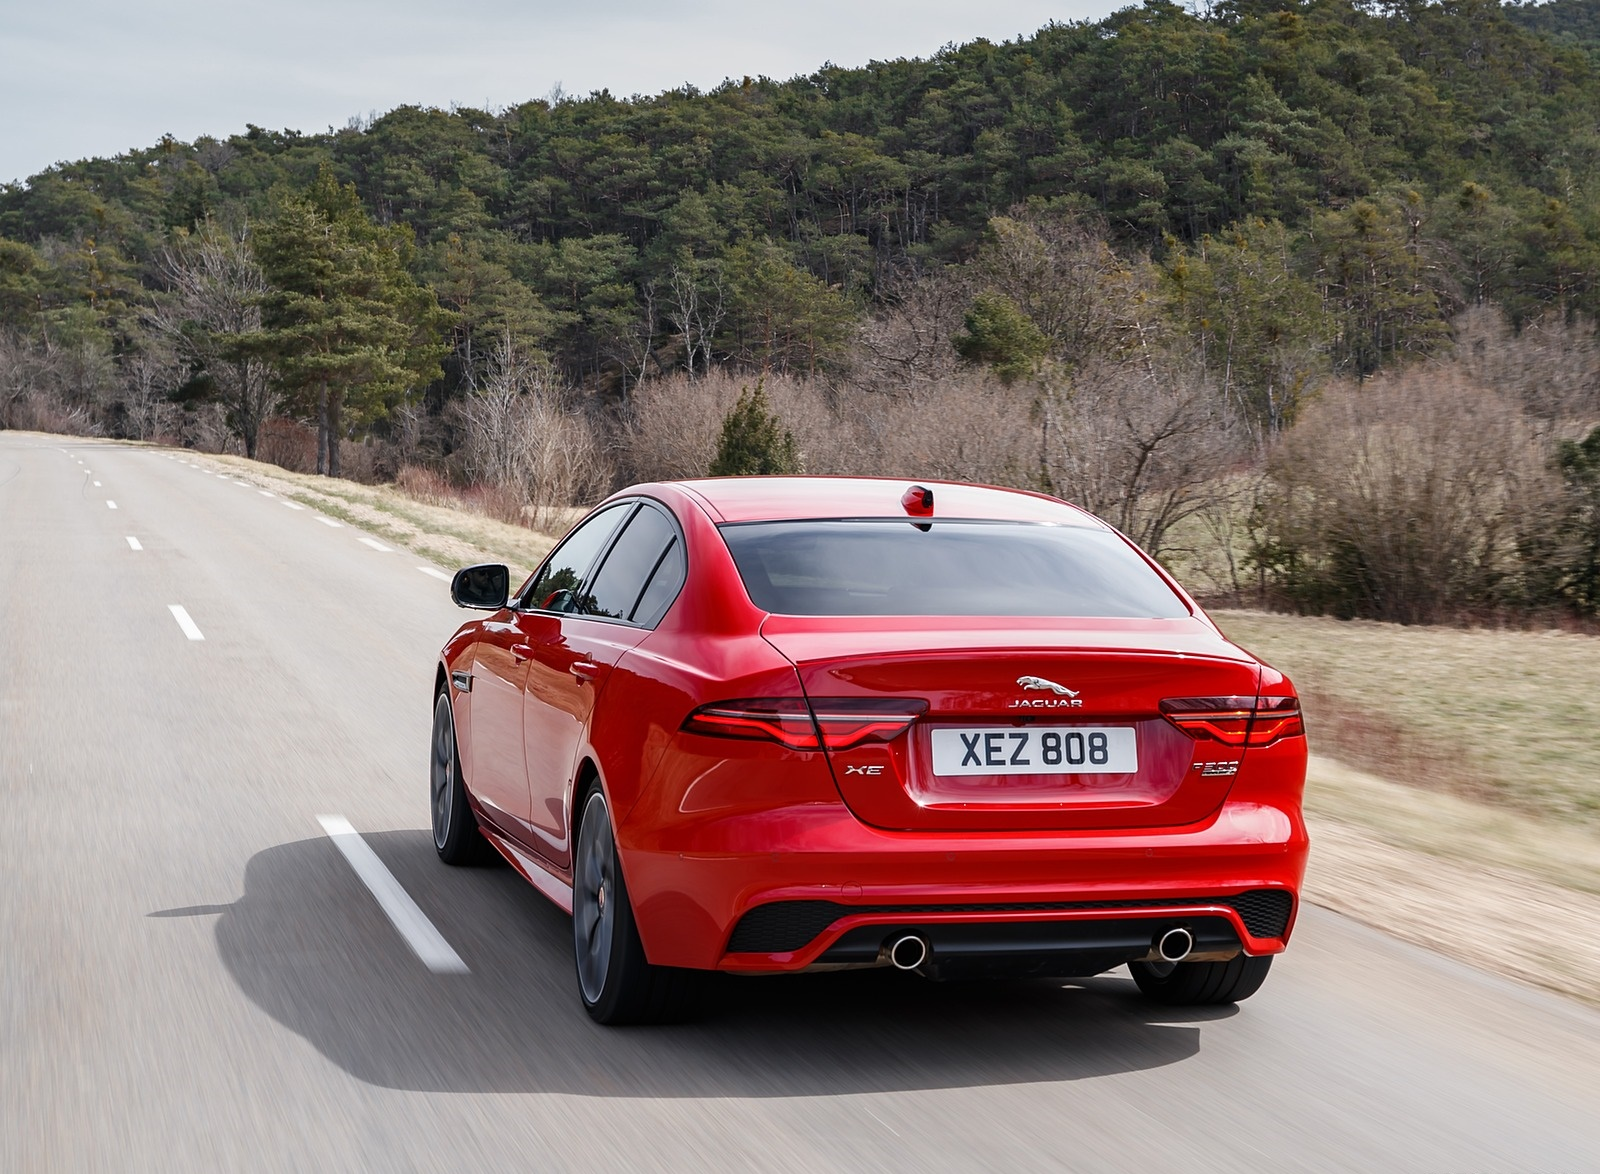 2020 Jaguar XE S R-Dynamic P300 (Color: Caldera Red) Rear Three-Quarter Wallpapers (4)